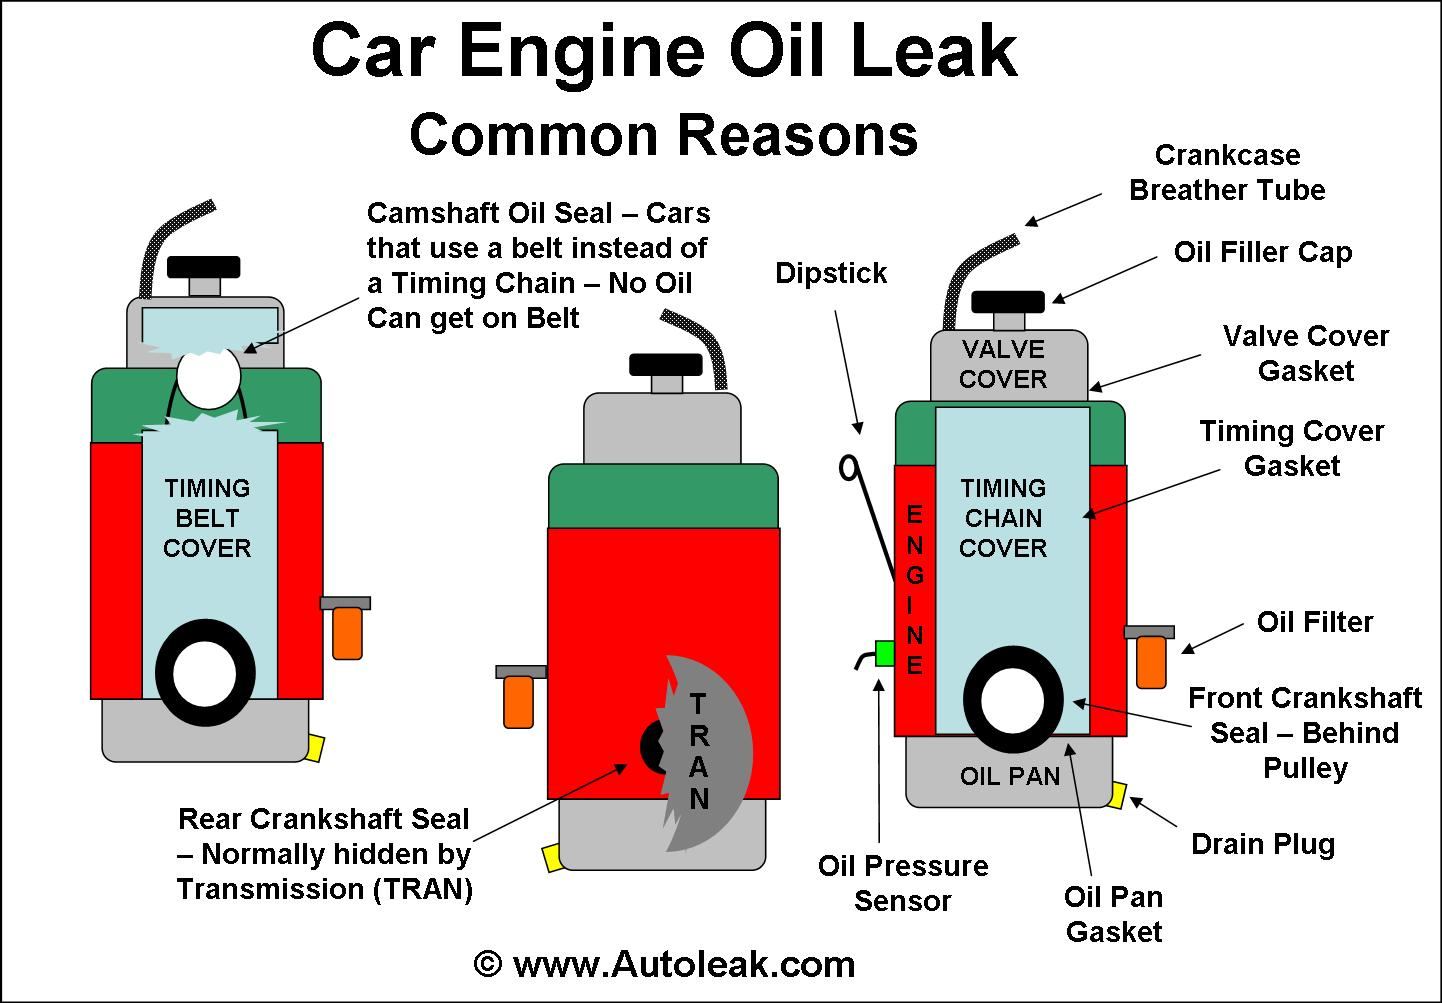 How To Stop An Oil Leak In A Car